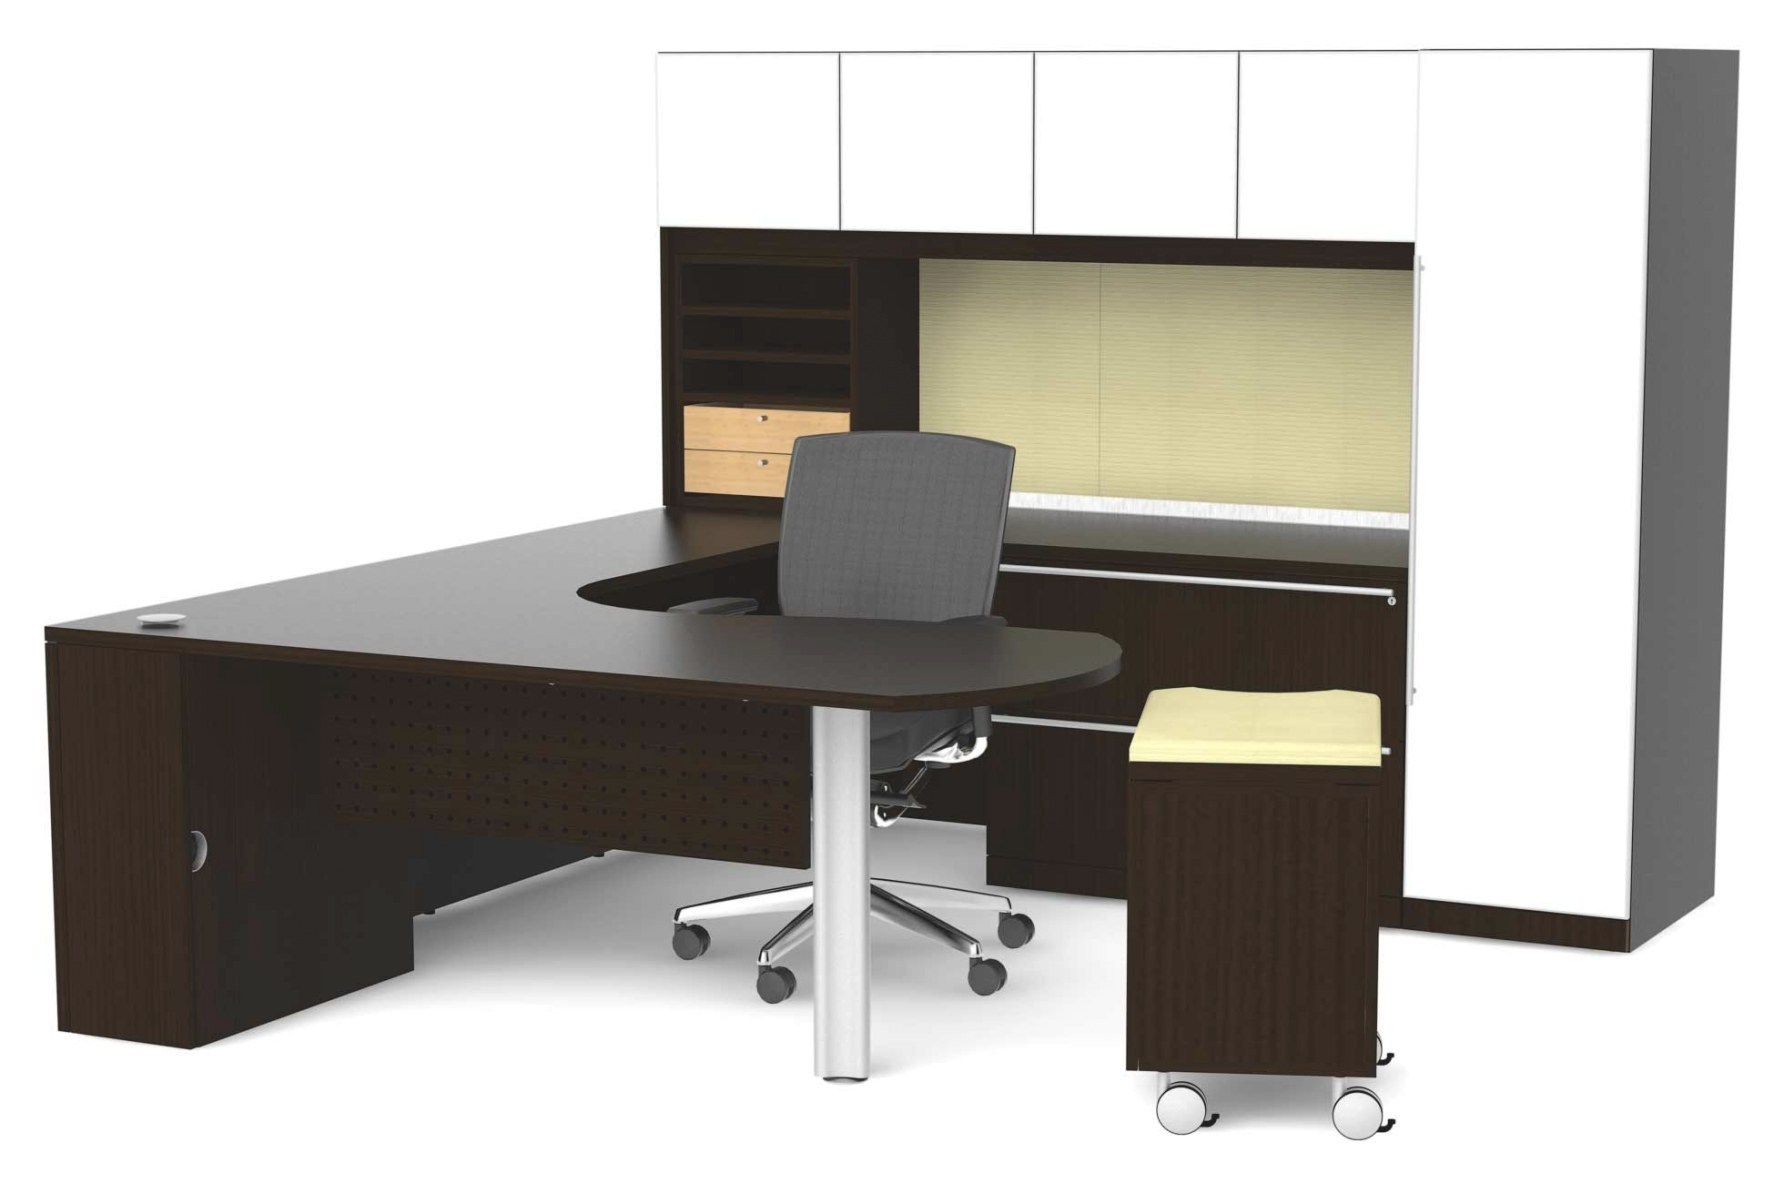 Cherryman Office Furniture Manufactures for L Shaped Office Desk